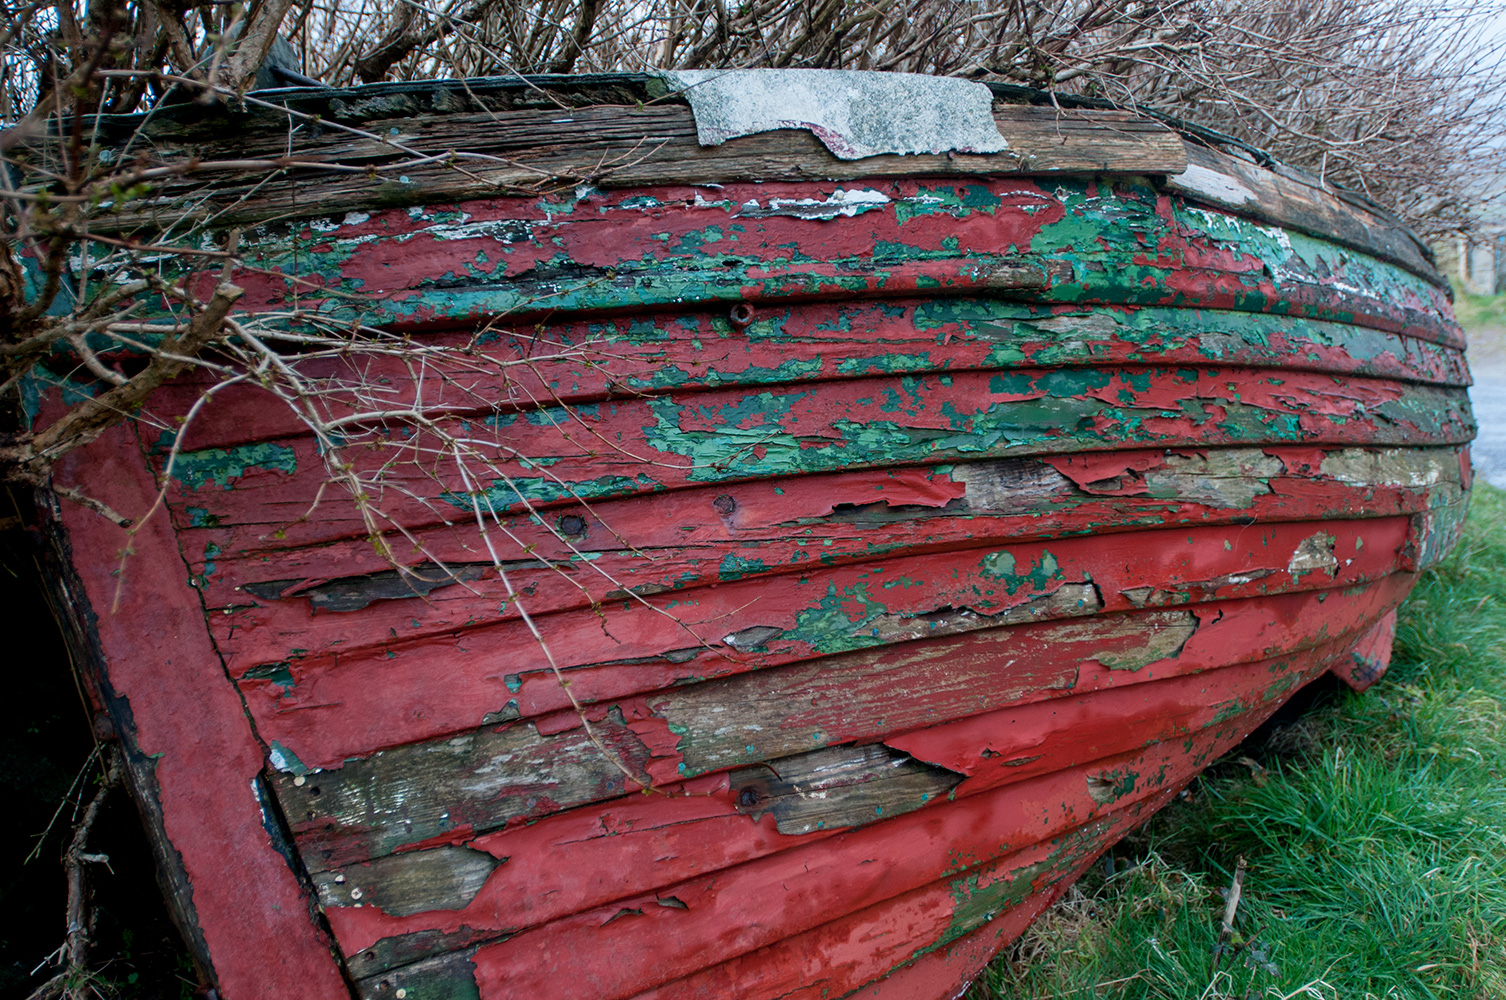 An old boat at CoghaneCounty Kerry, Republic of Ireland